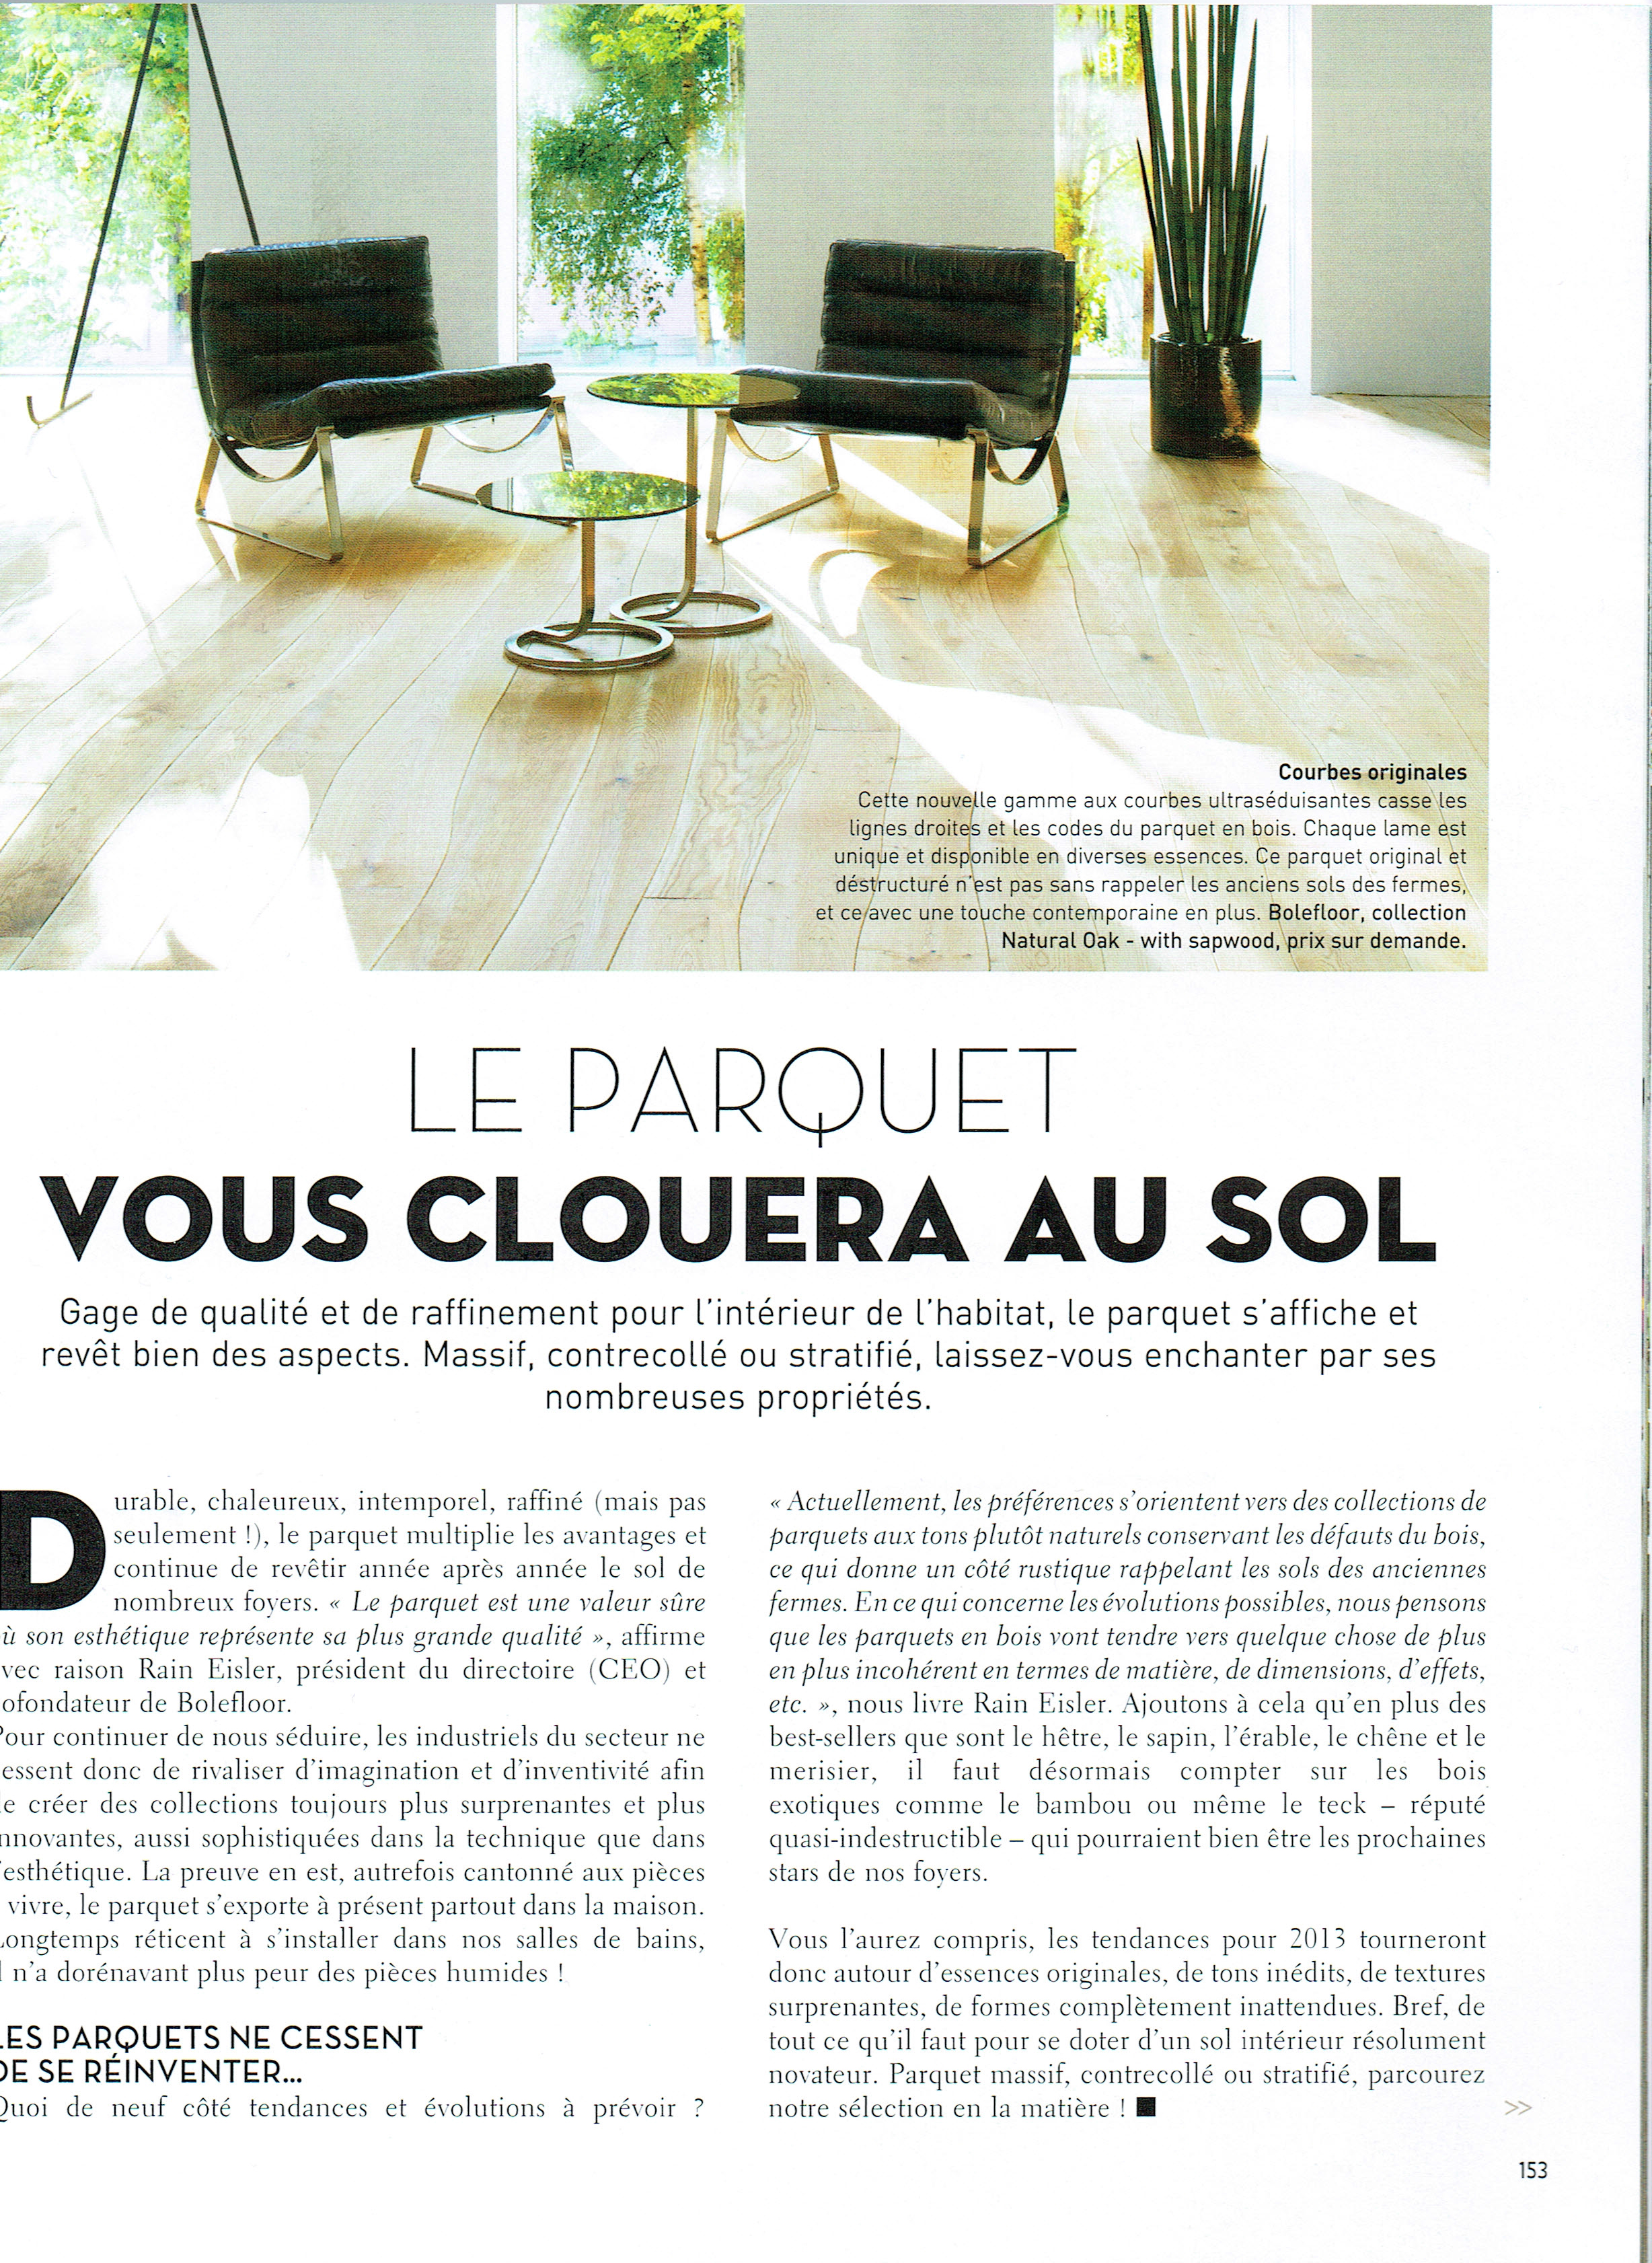 Home Magazine, February/March 2013, France